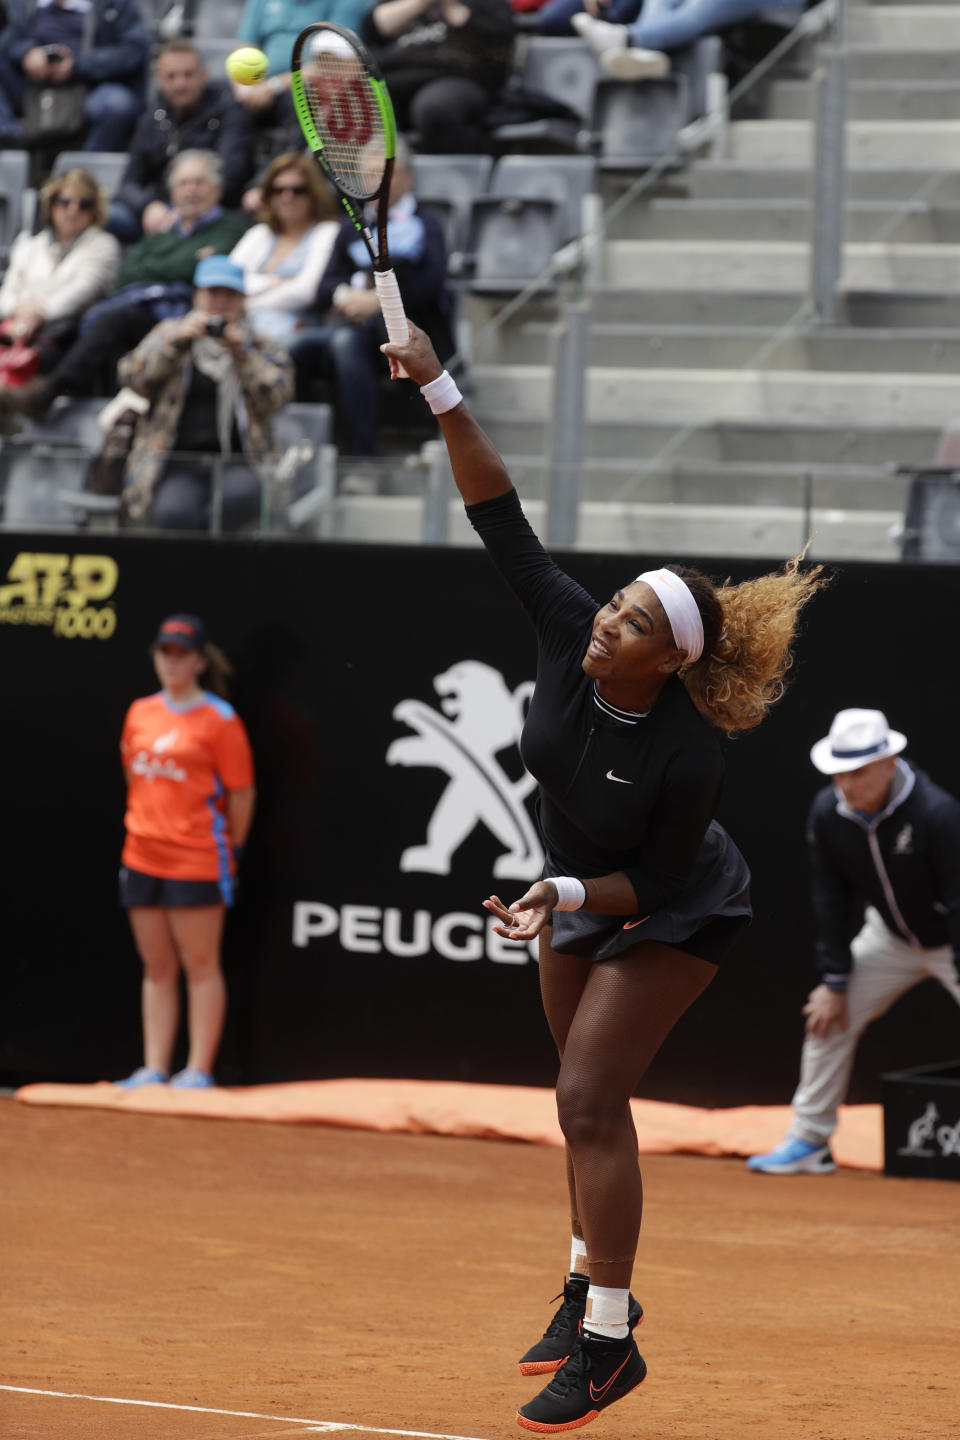 Serena Williams, of the United States, serves the ball to Sweden's Rebecca Peterson during their match at the Italian Open tennis tournament, in Rome, Monday, May, 13, 2019. (AP Photo/Gregorio Borgia)